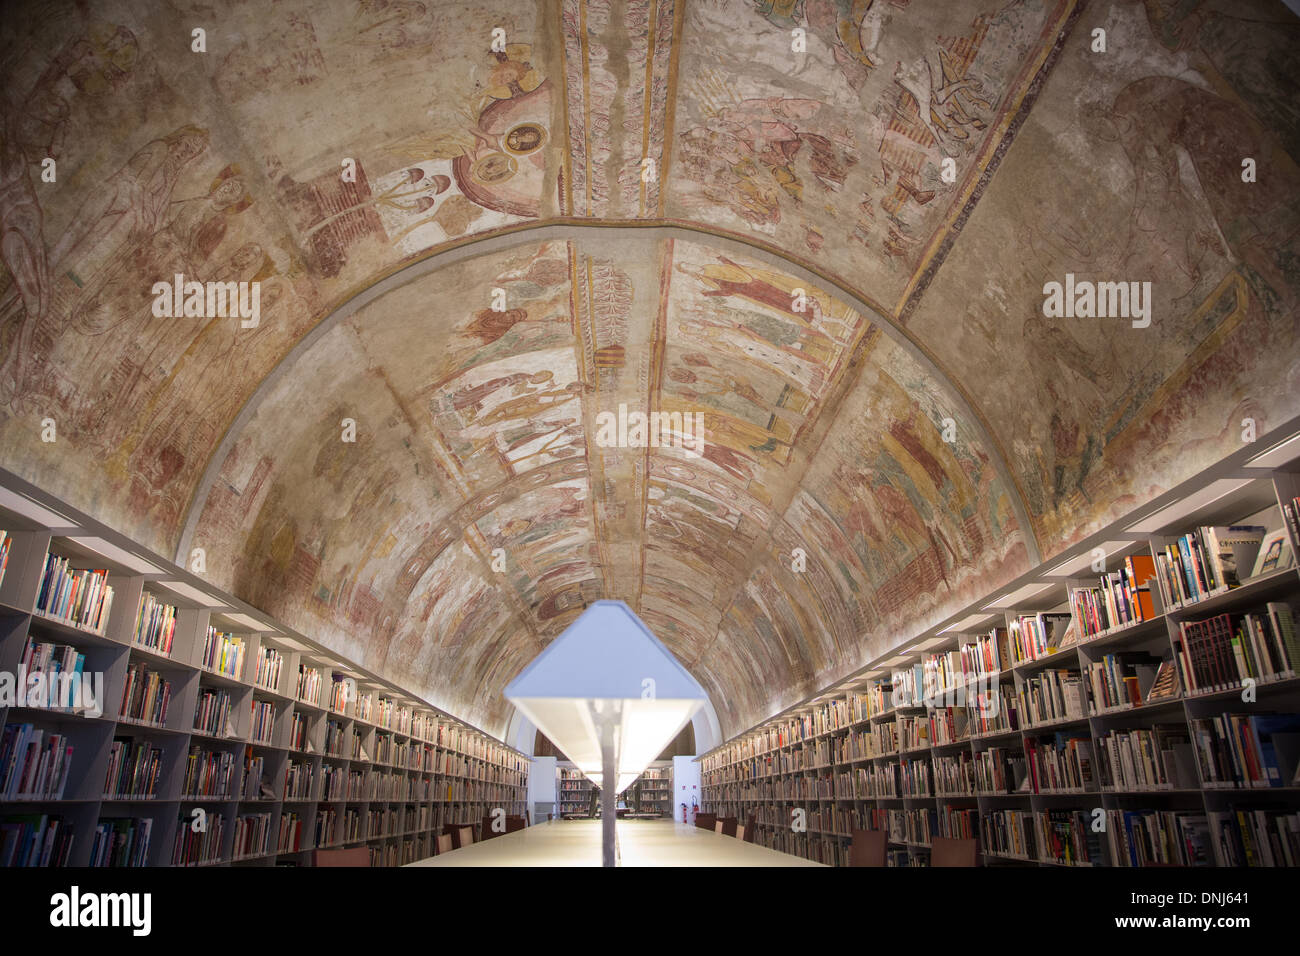 REPRODUCTION OF THE VAULTED CEILING OF THE ABBEY OF SAINT-SAVIN-SUR-GARTEMPE, LIBRARY OF THE CITY OF ARCHITECTURE - Stock Image